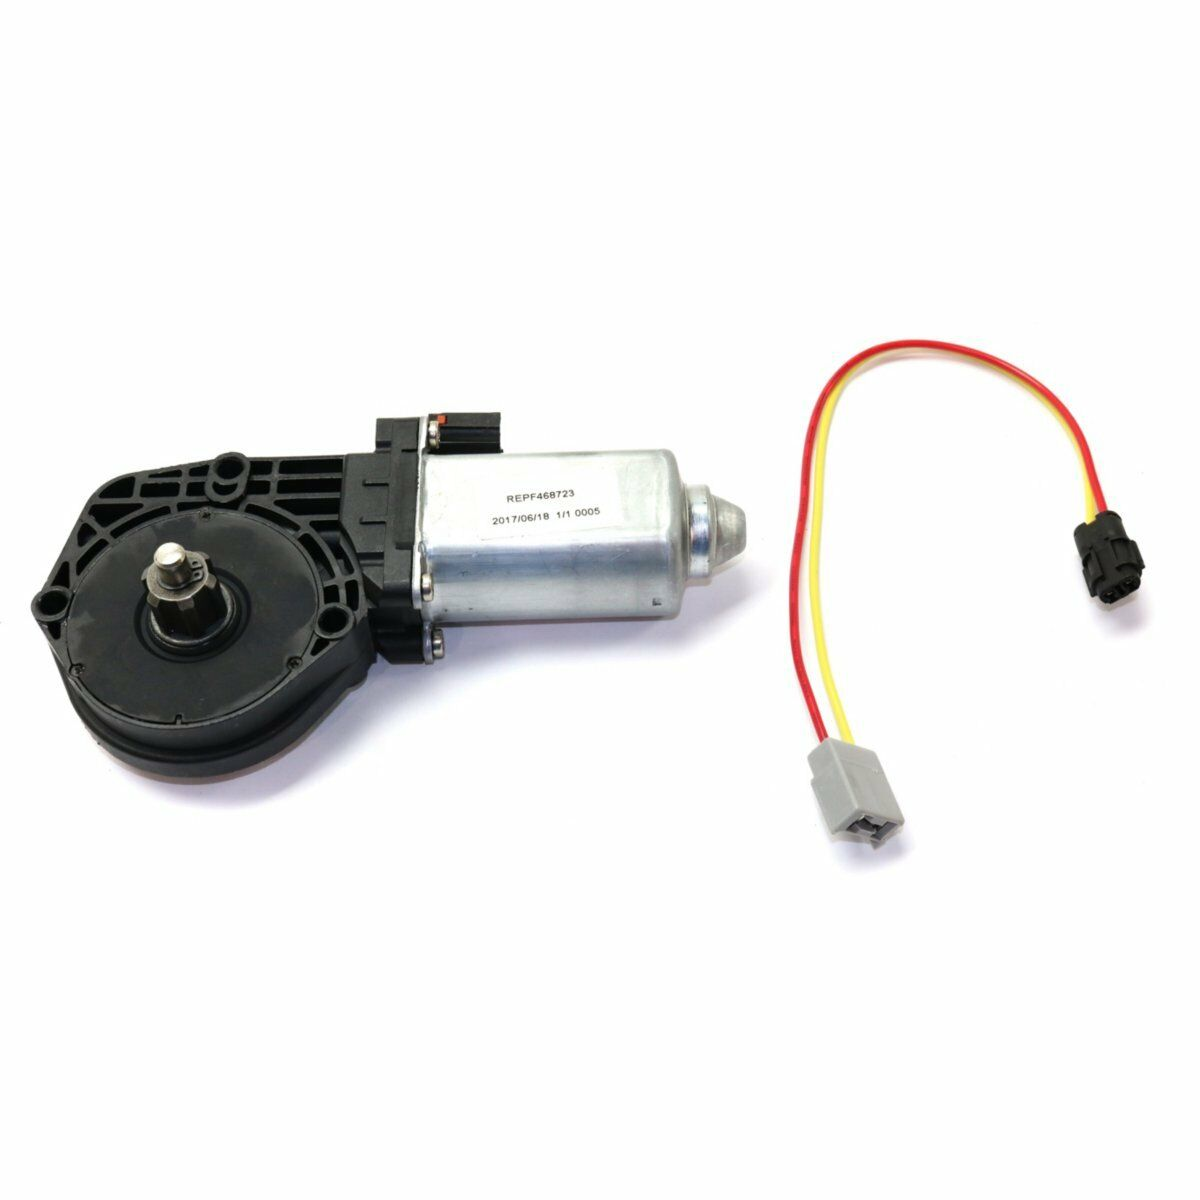 Window Motor For 1992-2011 Ford Crown Victoria Front Right or Rear Left F2VZ54233V95ARM